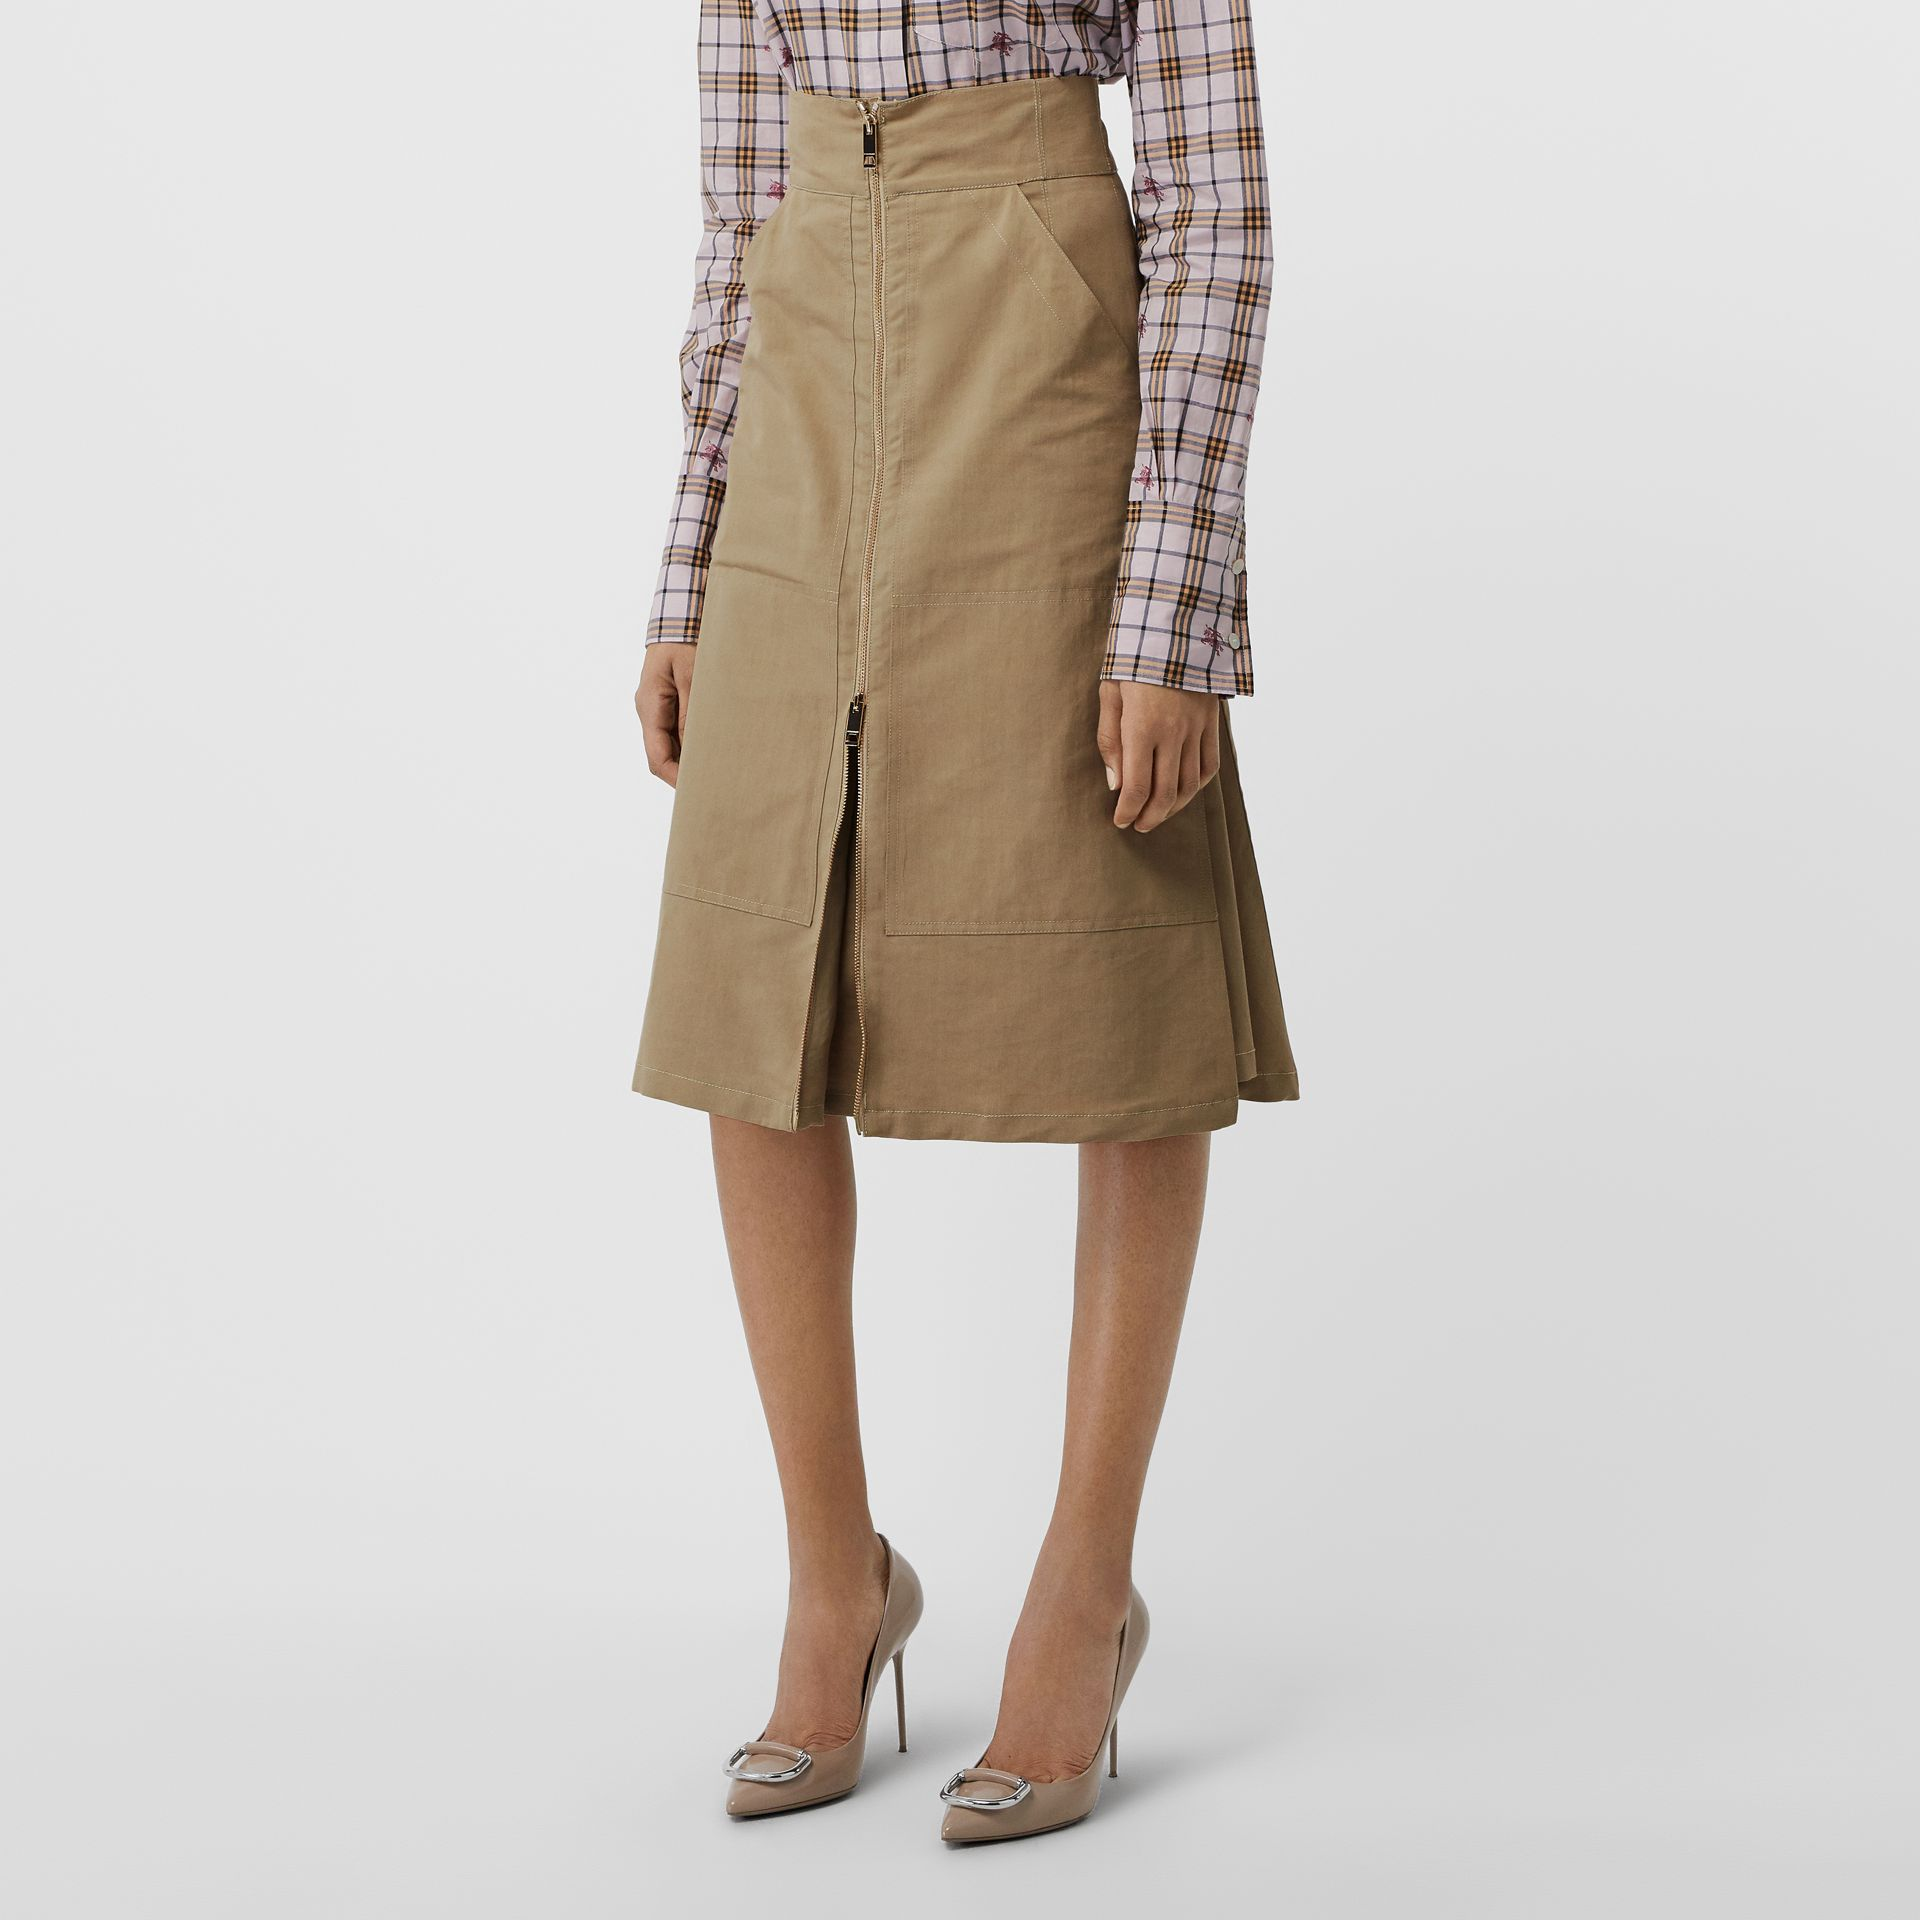 Cotton Silk High-waisted Skirt in Beige - Women | Burberry Canada - gallery image 4